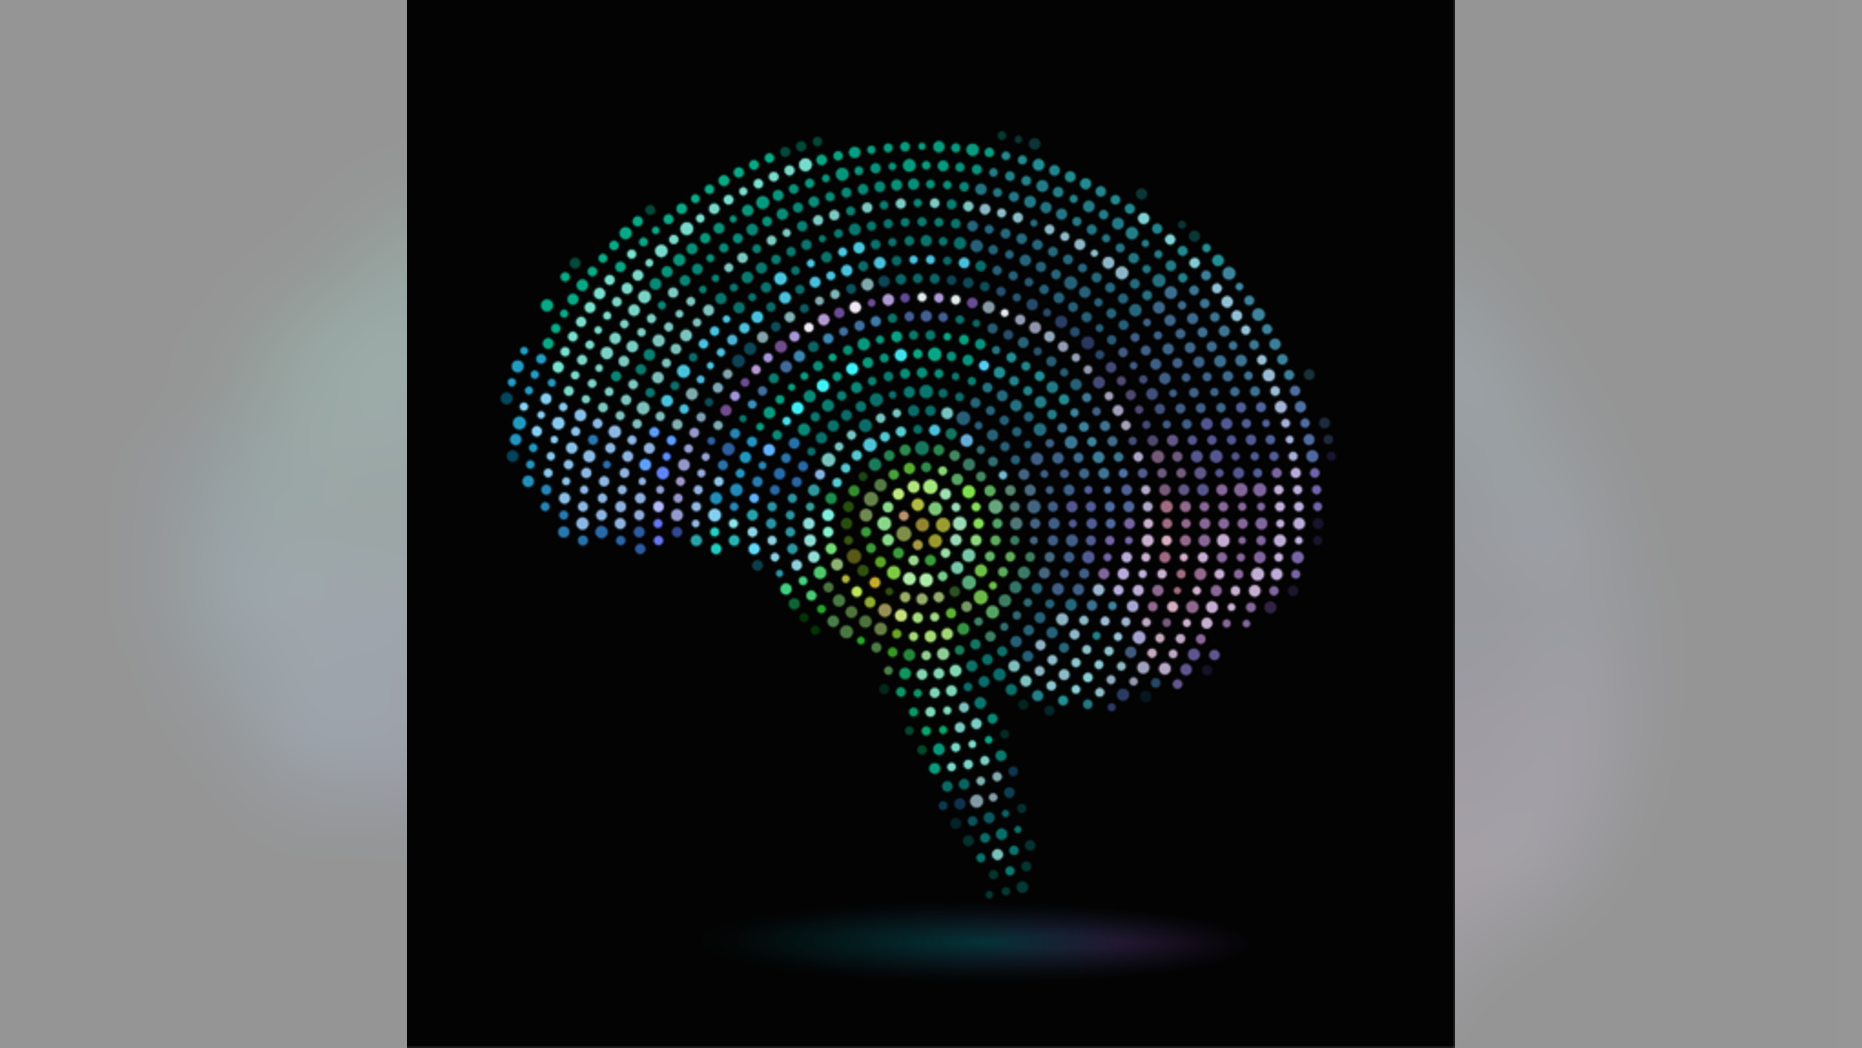 DARPA's Restoring Active Memory program aims to bridge gaps in memory among veterans with Traumatic Brain Injury and others.